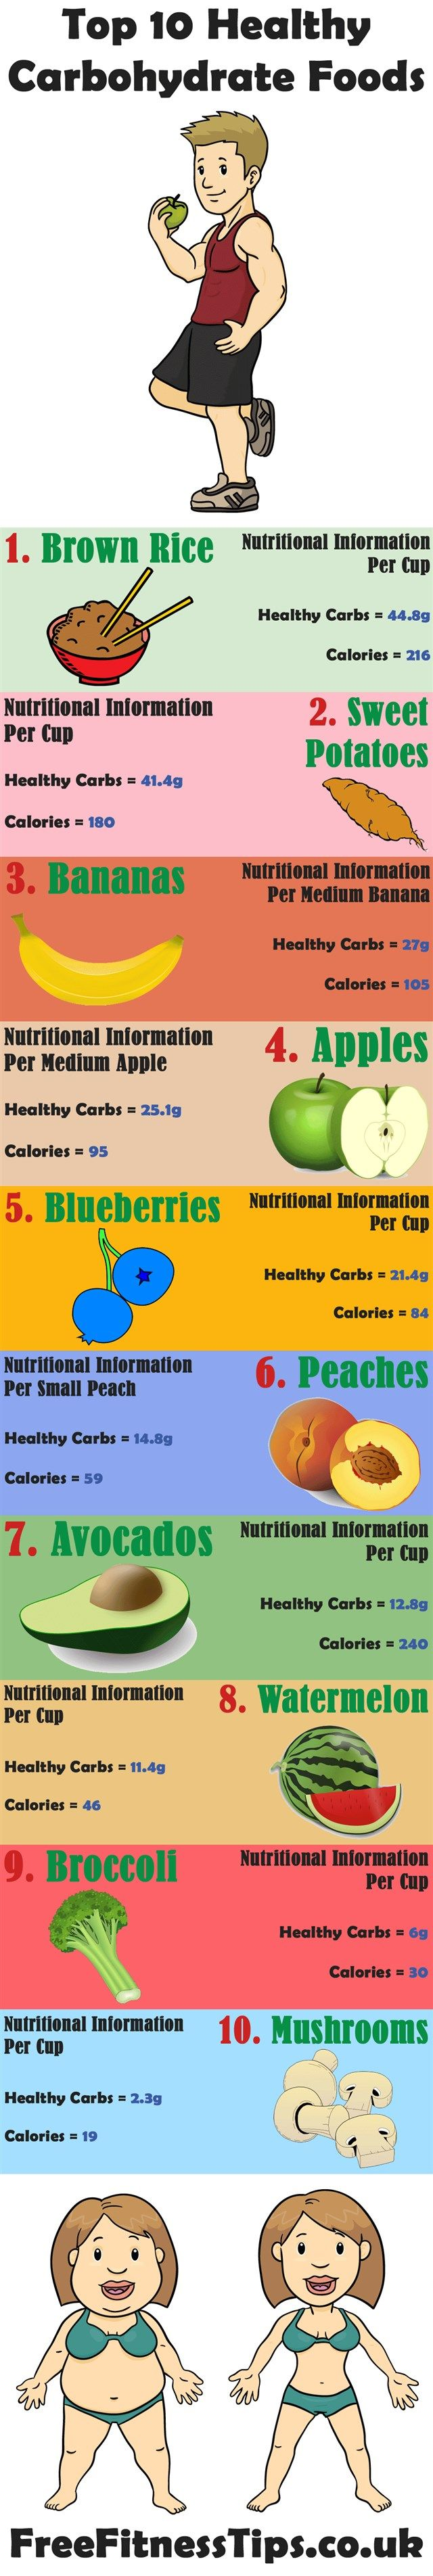 Top 10 Healthy Carbohydrate Foods Infographic Weightloss